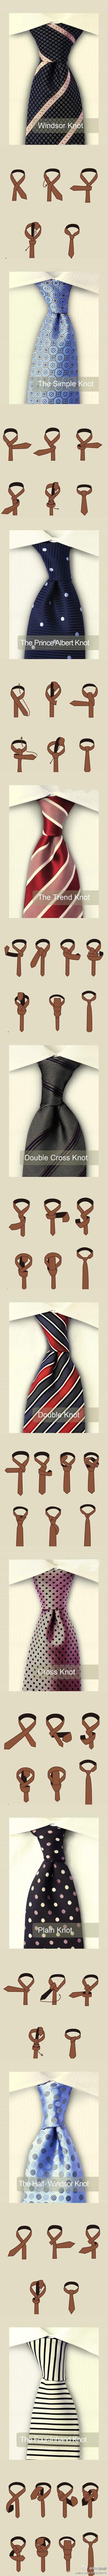 How to tie various knots.